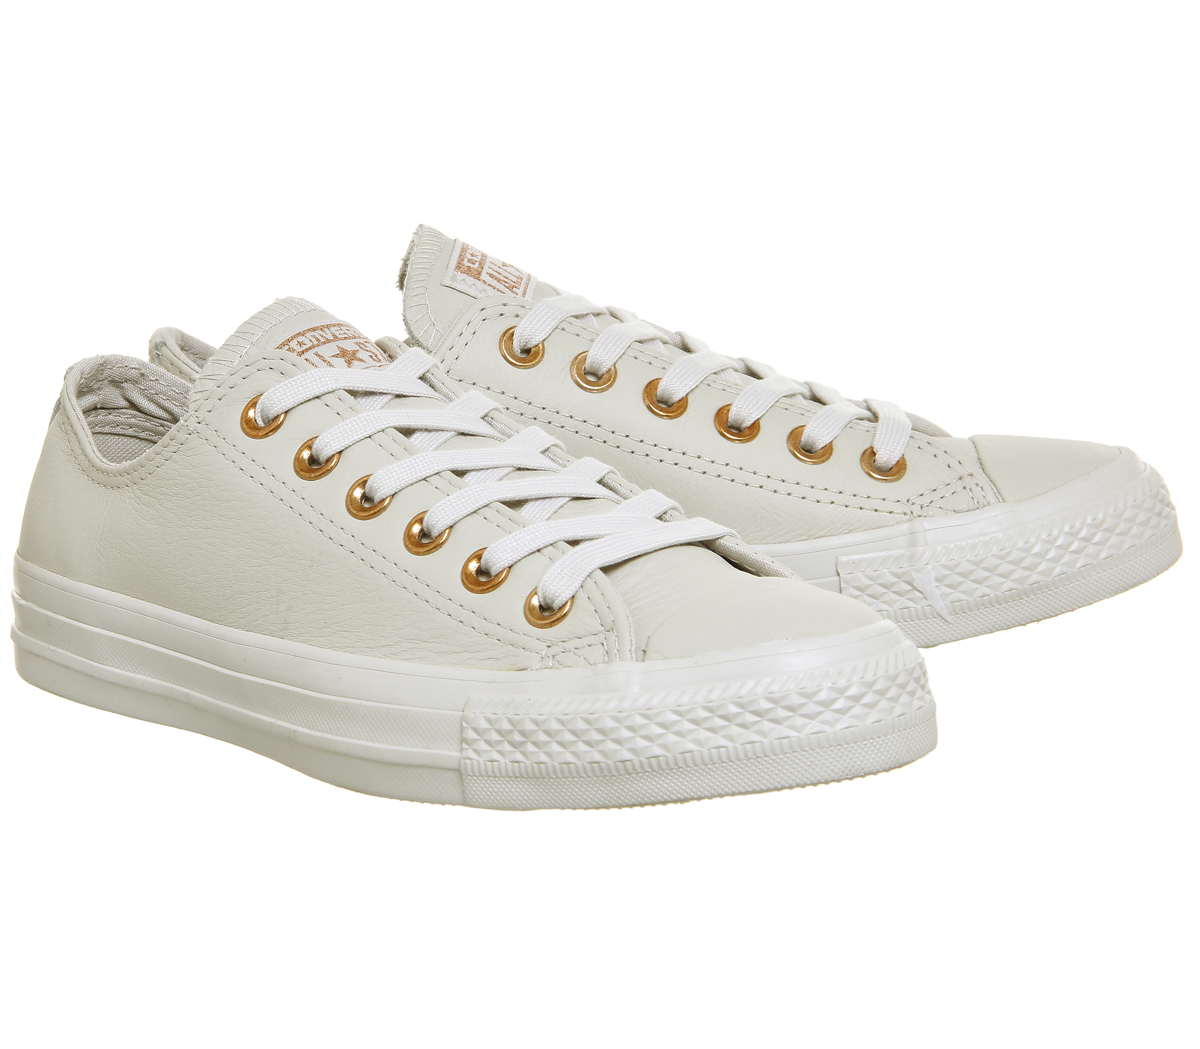 Damen Converse All Kitty Star Niedrig Leder Pale Kitty All Rotgold Turnschuhe 2ebe9c